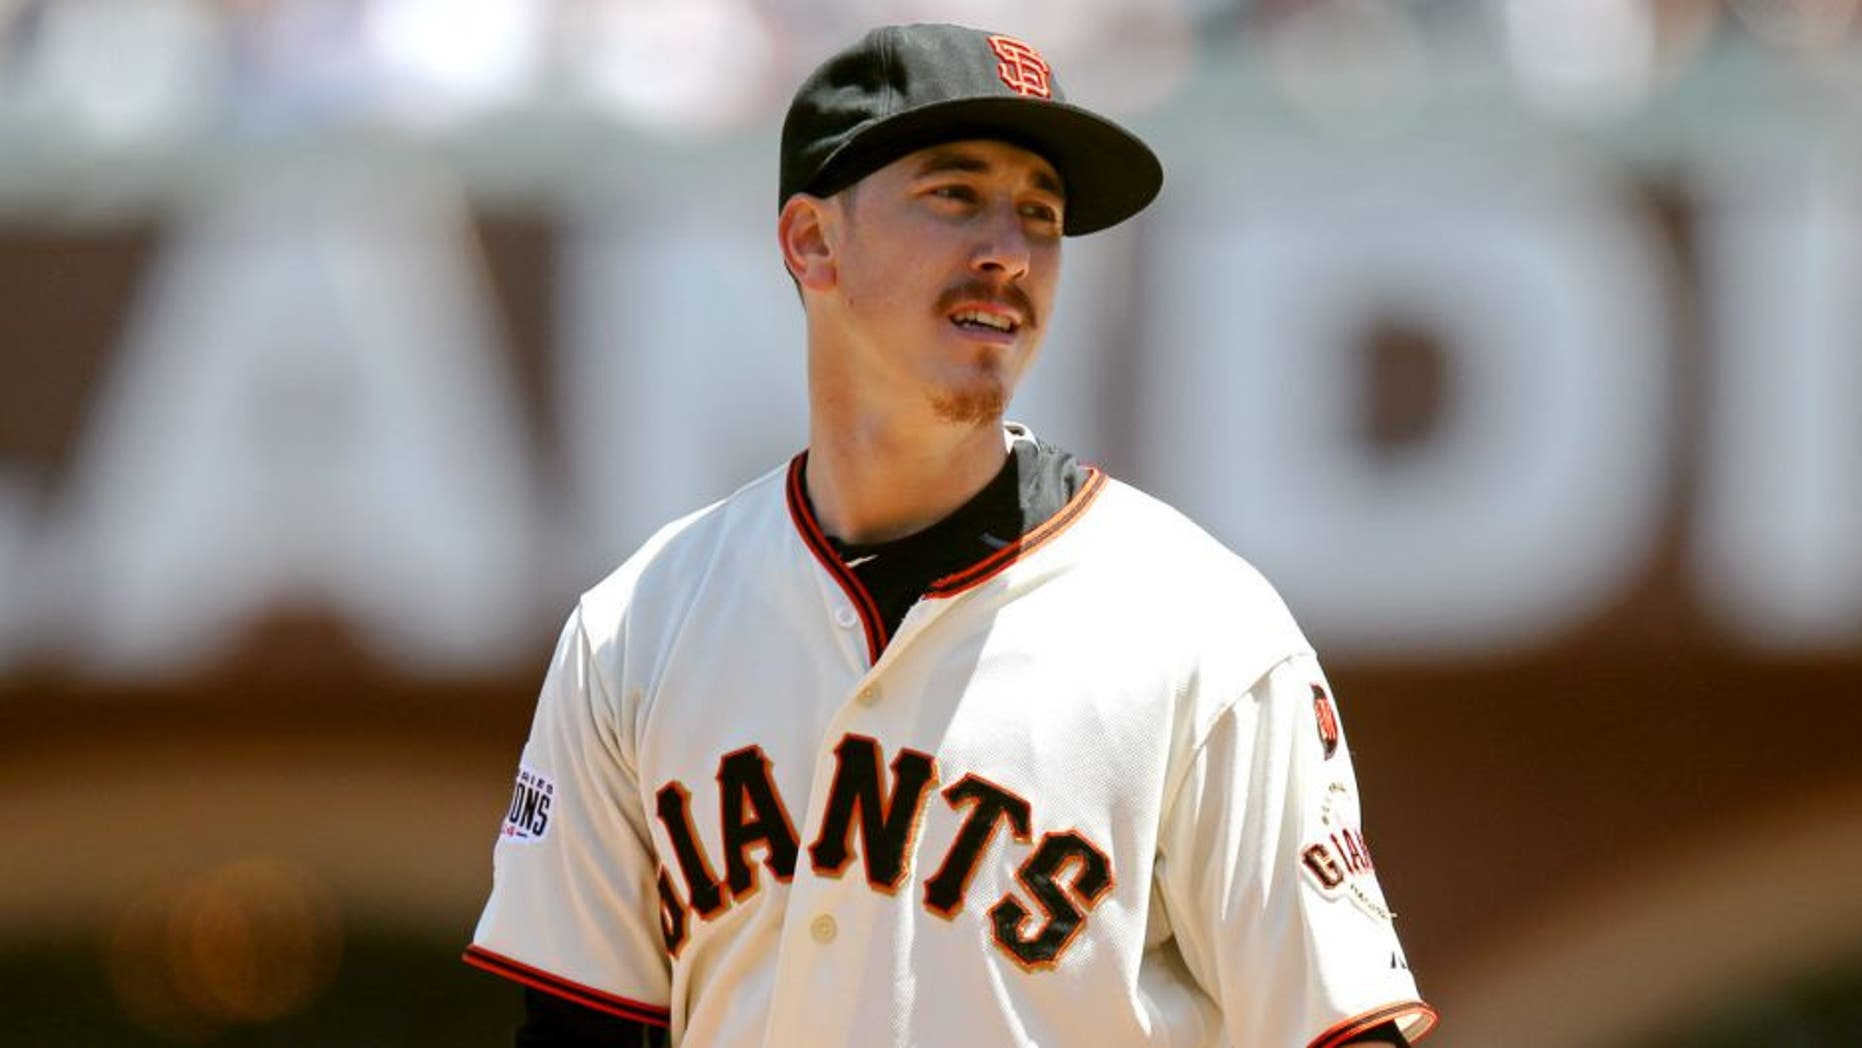 SAN FRANCISCO, CA - JUNE 16: Tim Lincecum #55 of the San Francisco Giants pitches against the Seattle Mariners during the game at AT&T Park on Tuesday, June 16, 2015 in San Francisco, California. (Photo by Brad Mangin/MLB Photos via Getty Images)